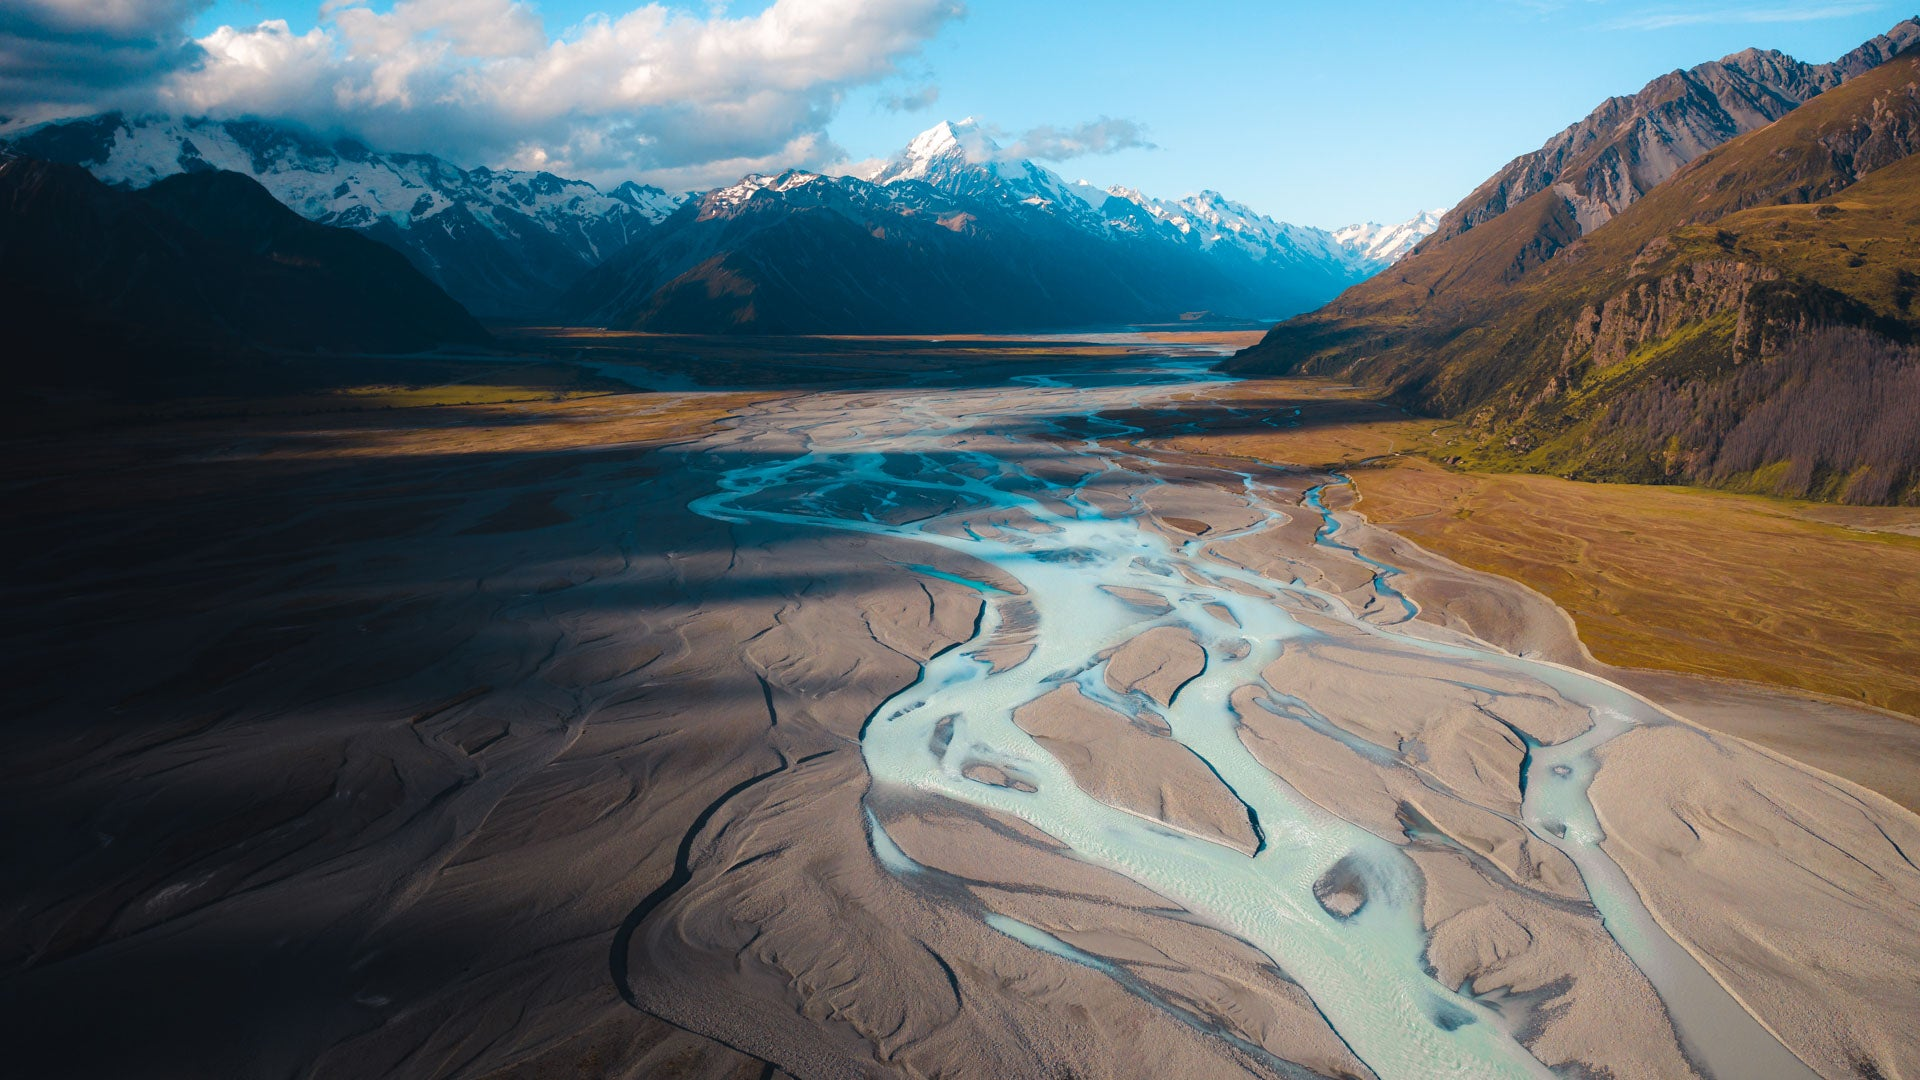 A 5 day itinerary for New Zealand's South Island - Pat Kay Away